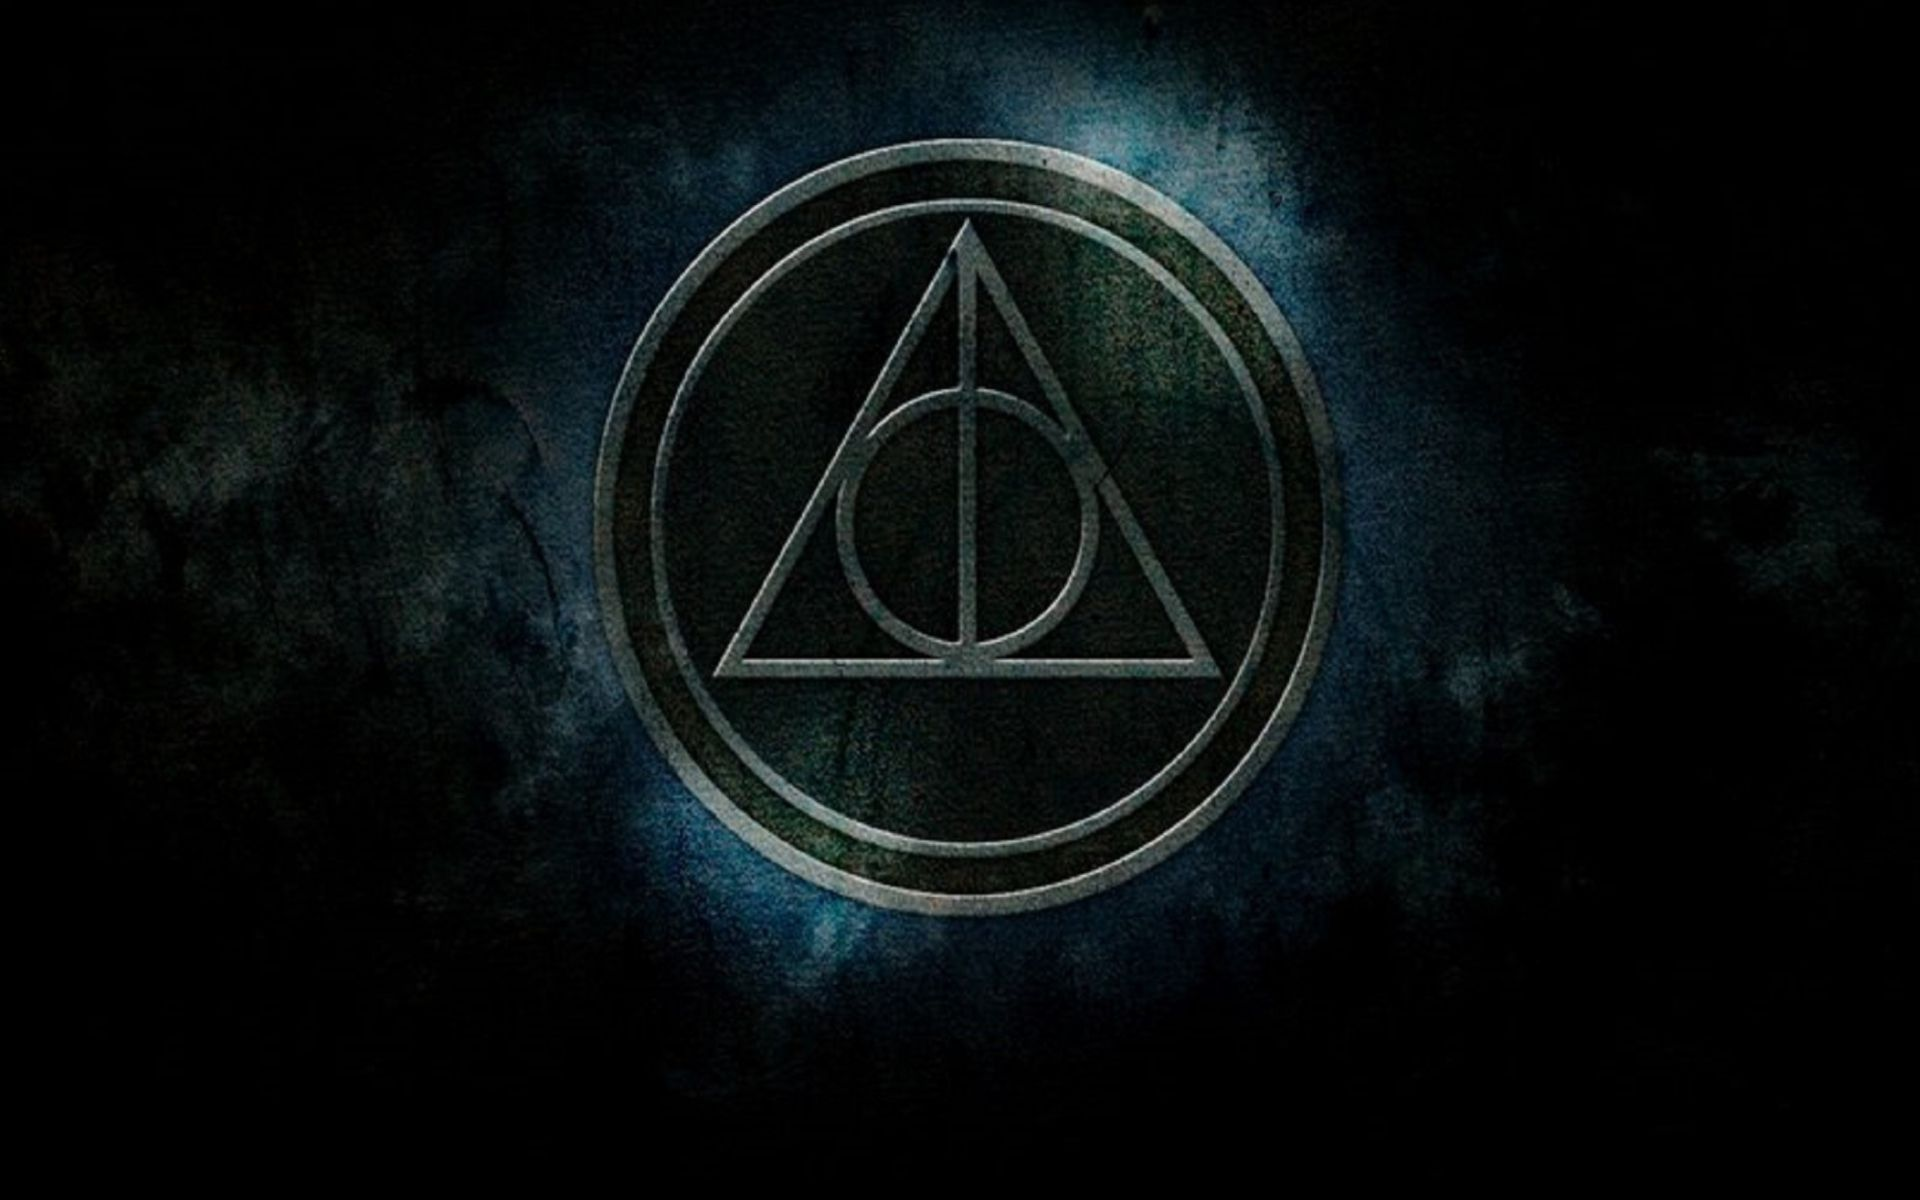 Amazing Wallpaper Harry Potter Abstract - 006276232c9dfc3459c62a02c93fa392  Perfect Image Reference_469531.jpg